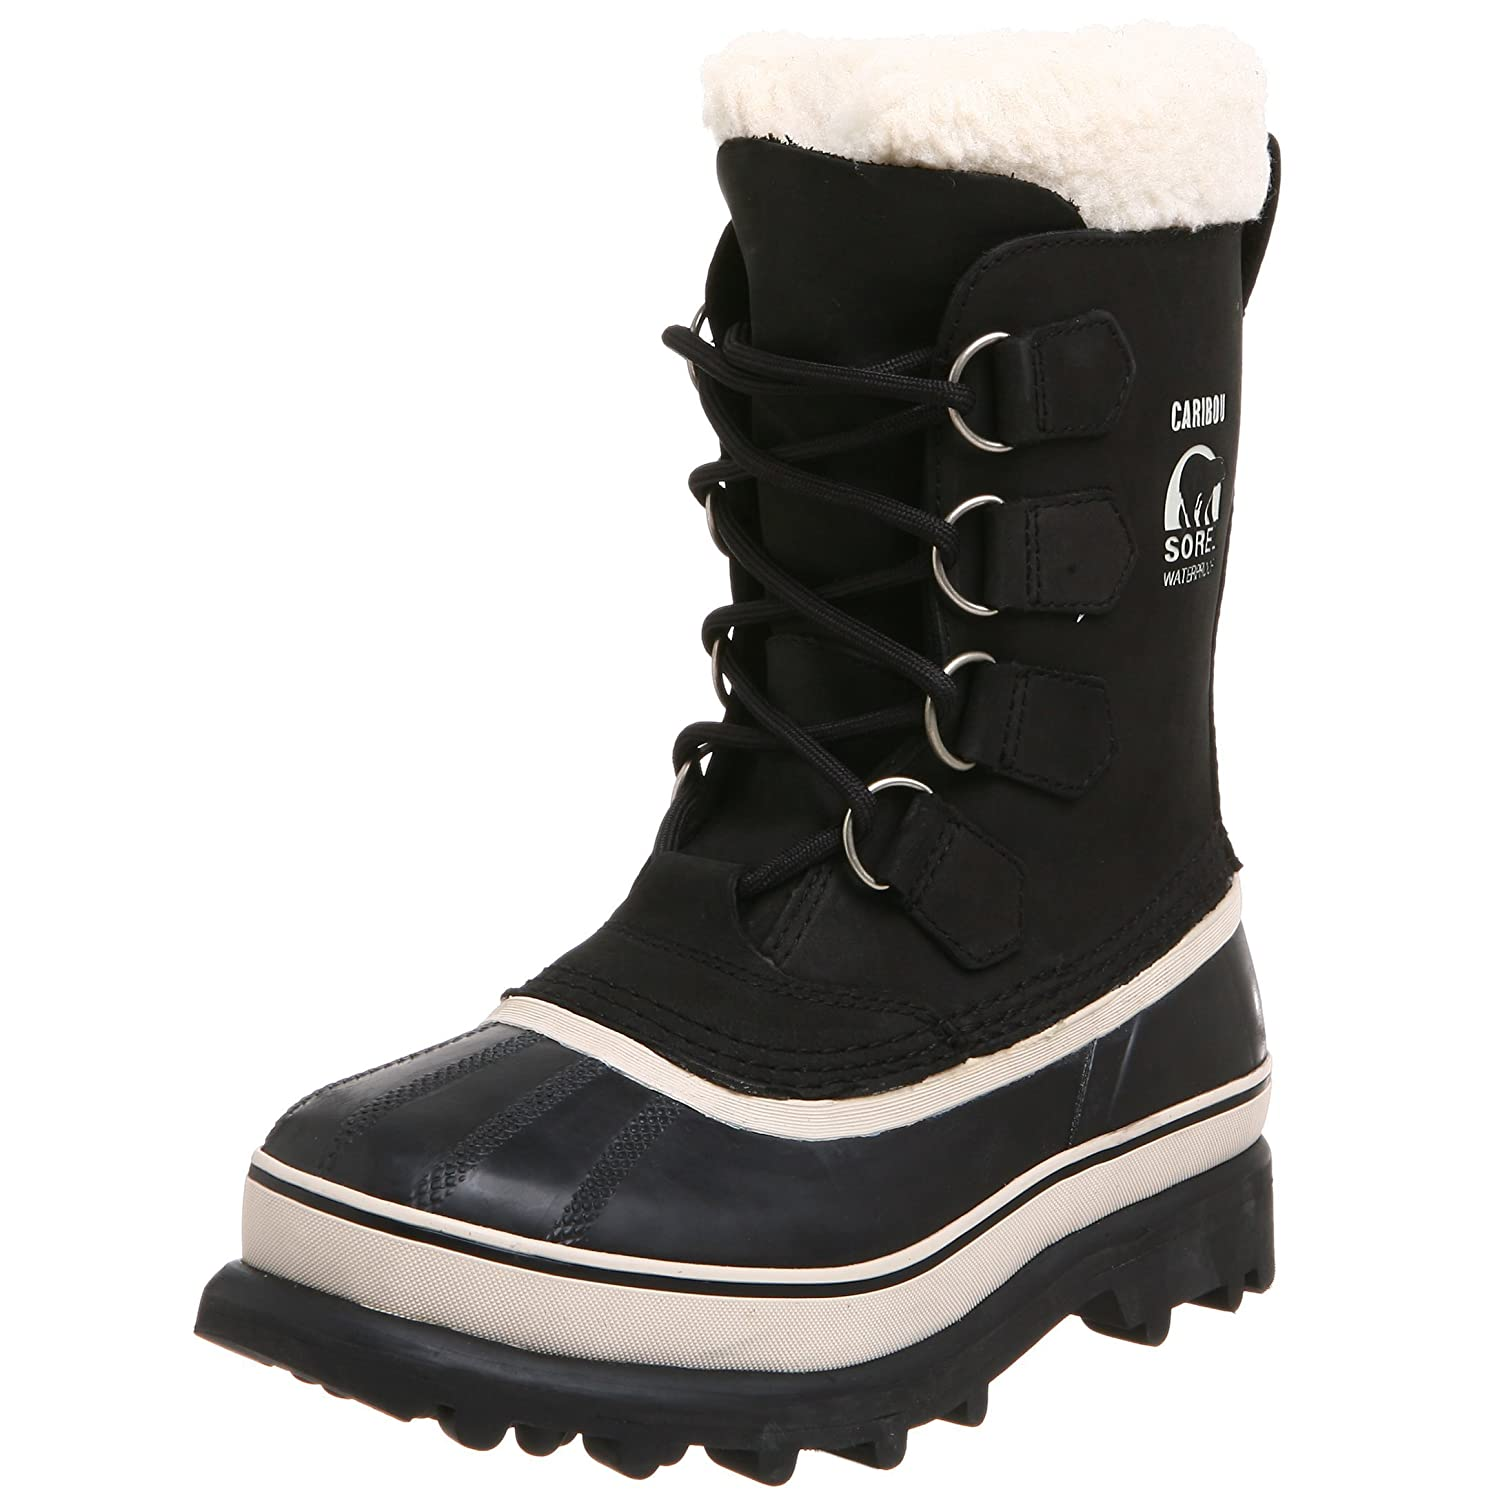 Sorel Women&#8217;s Caribou Boots